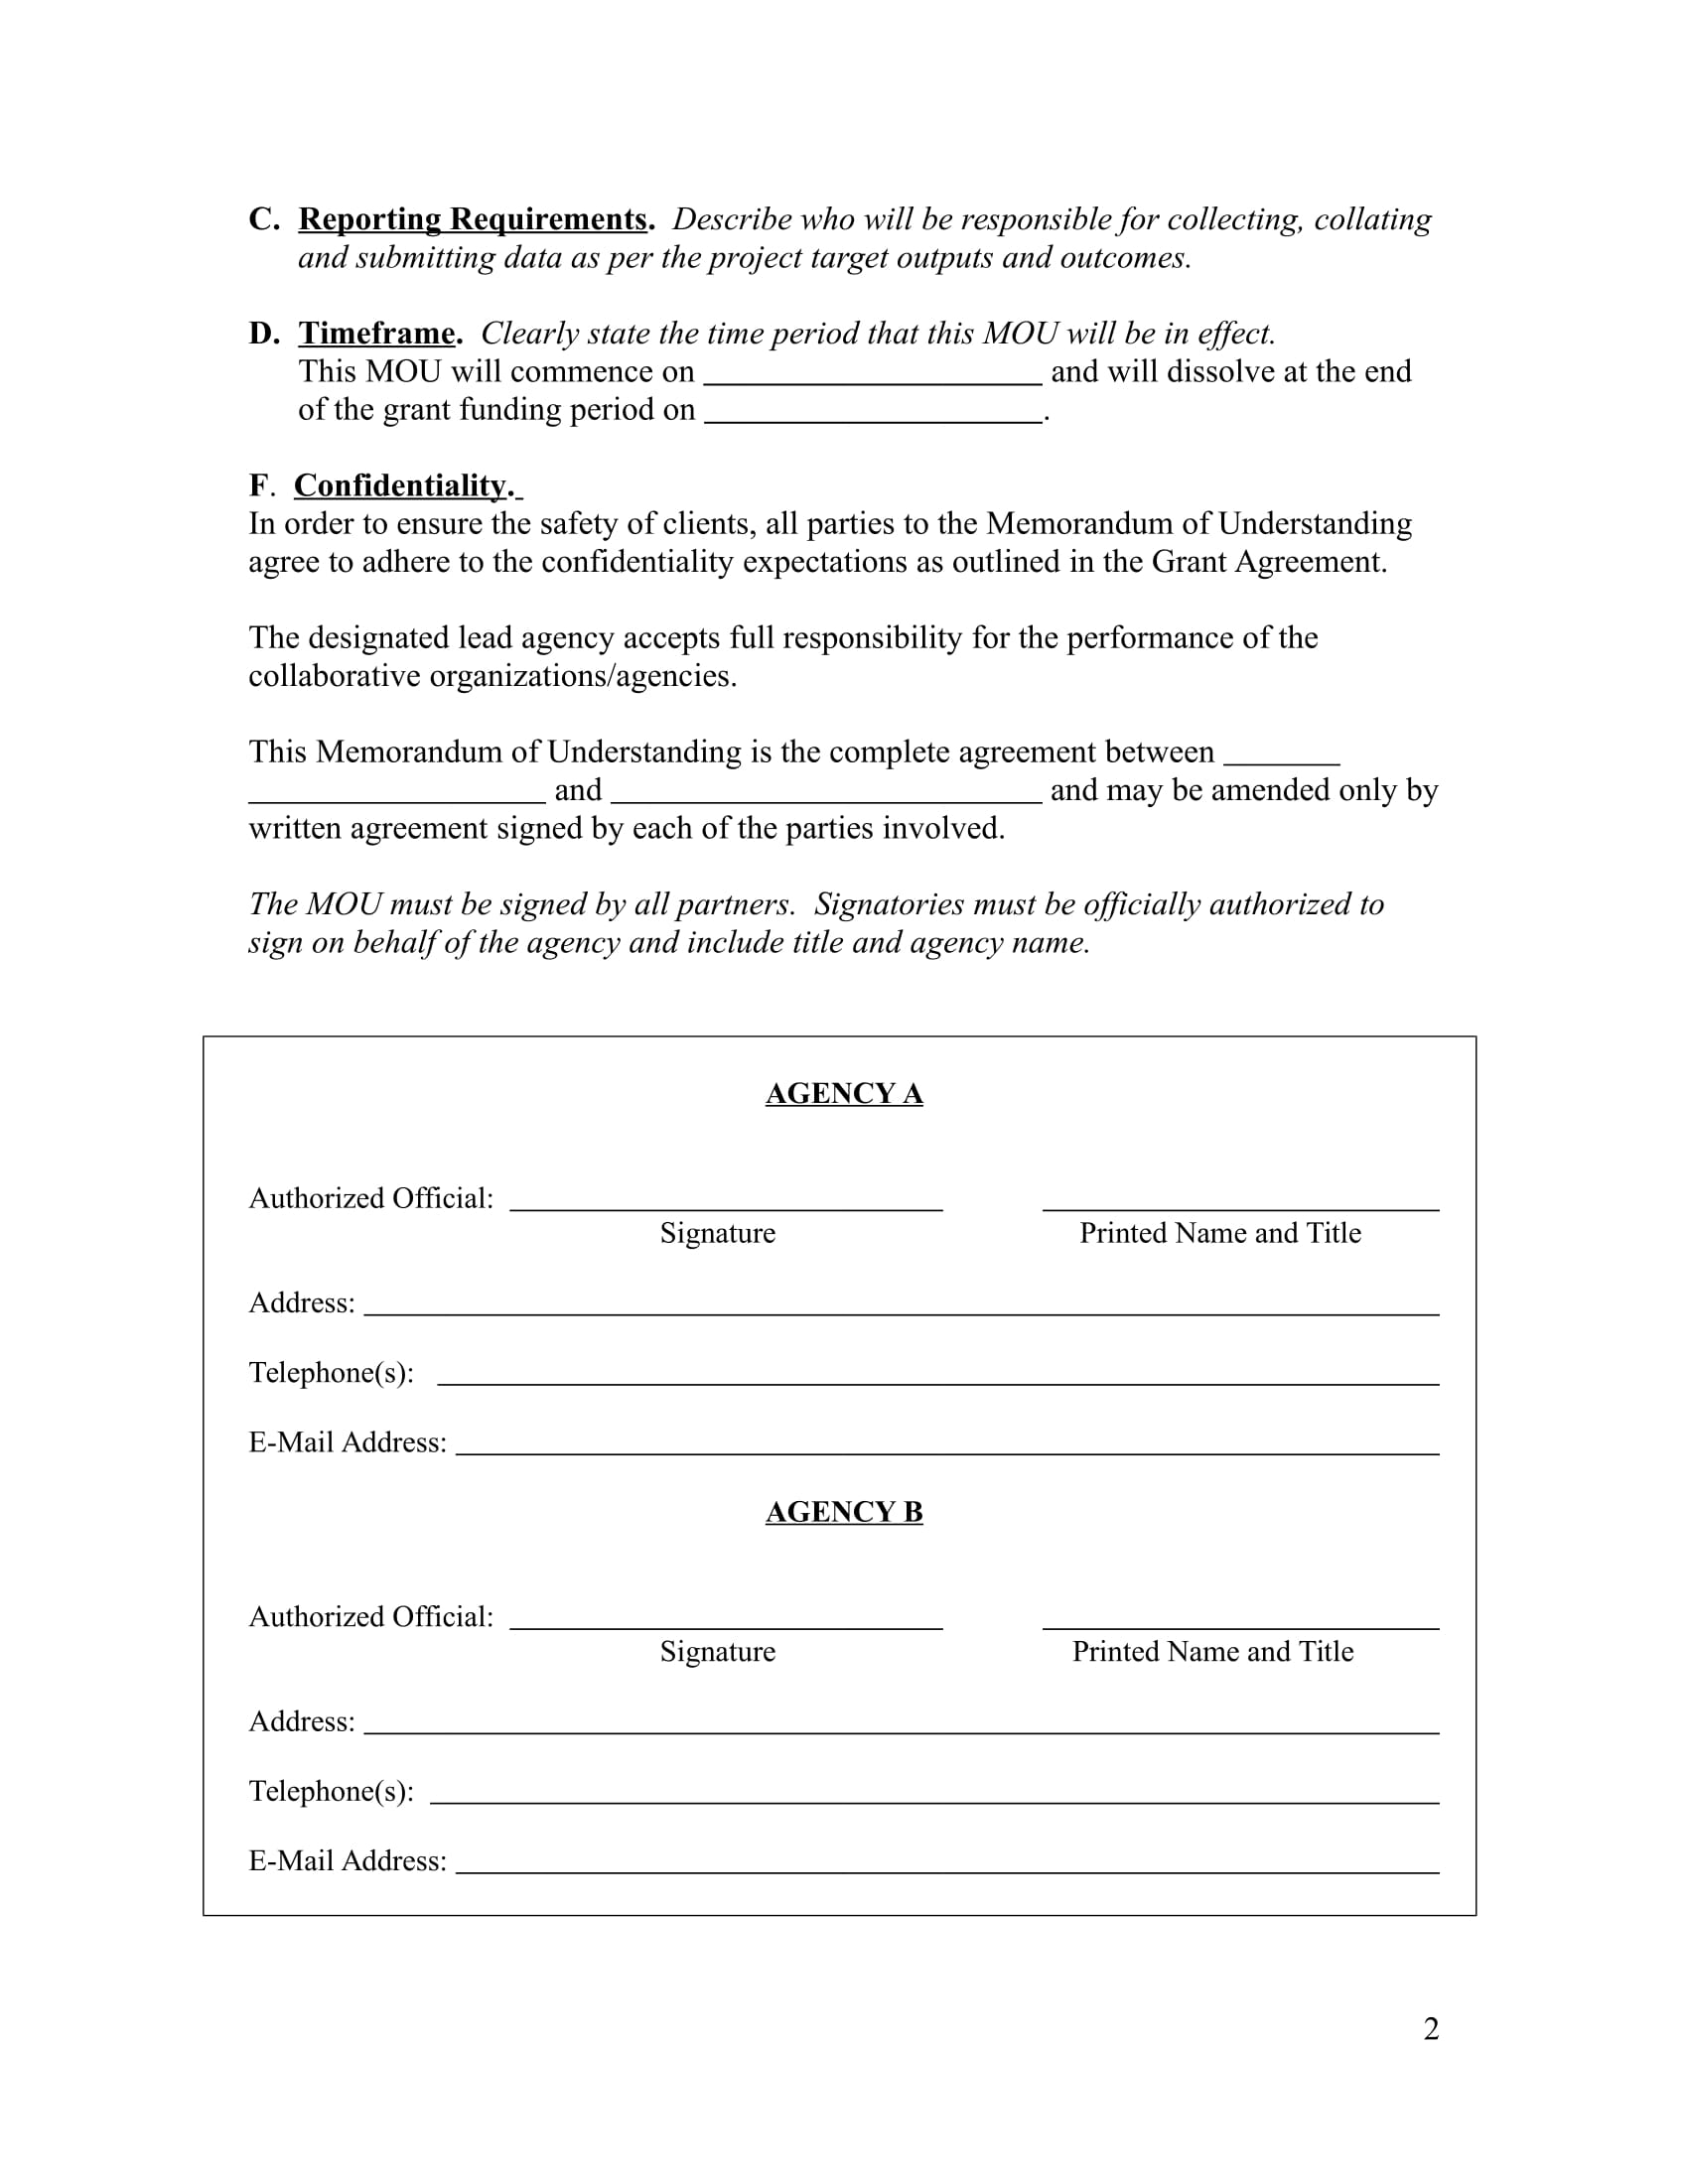 Memorandum download free business letter templates forms menus memorandum of understanding wajeb